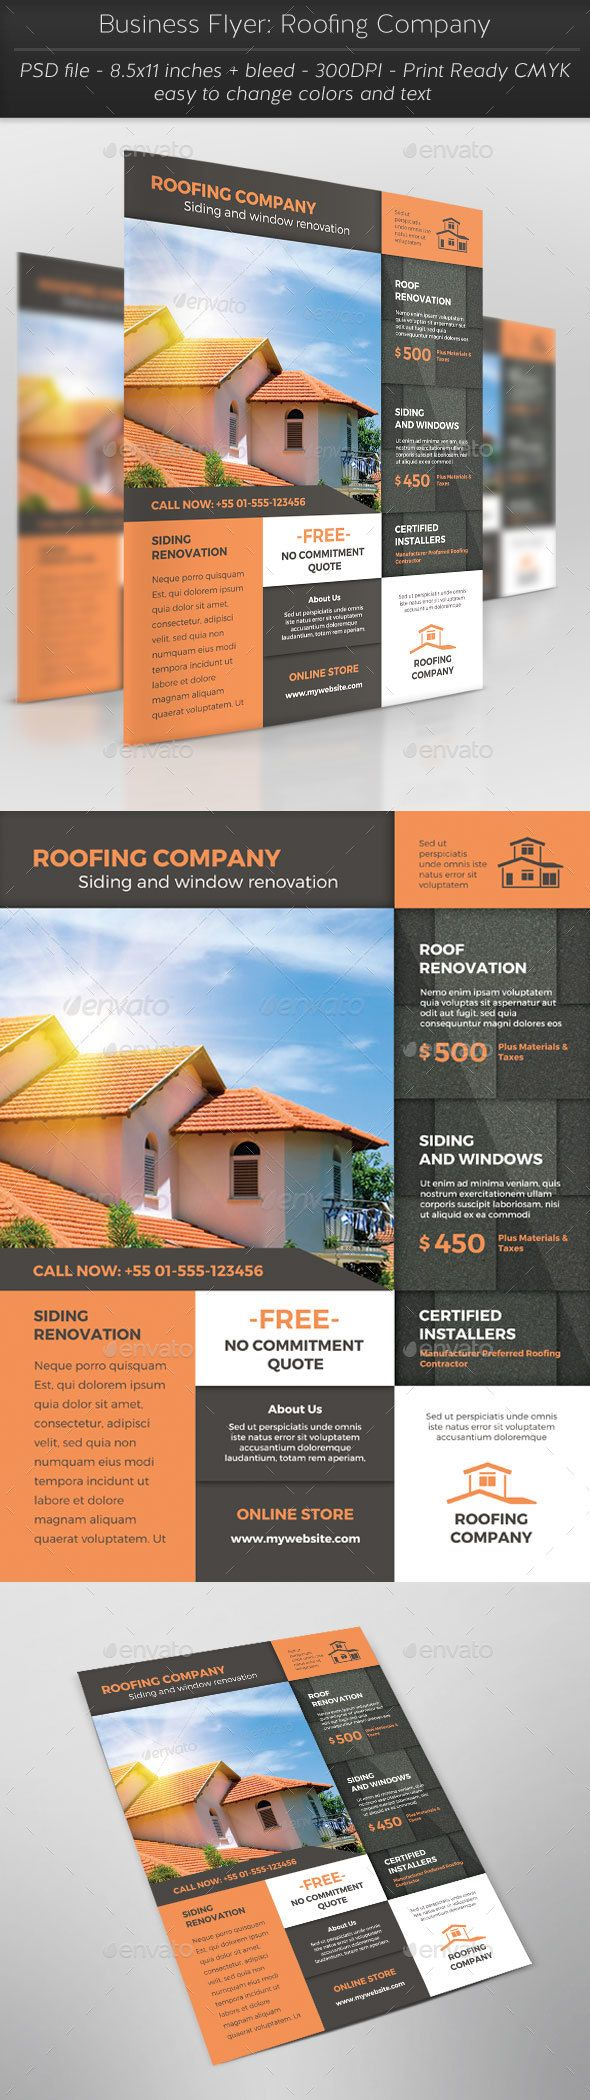 Business Flyer Roofing Company Roofing Companies Roofing Business Flyer